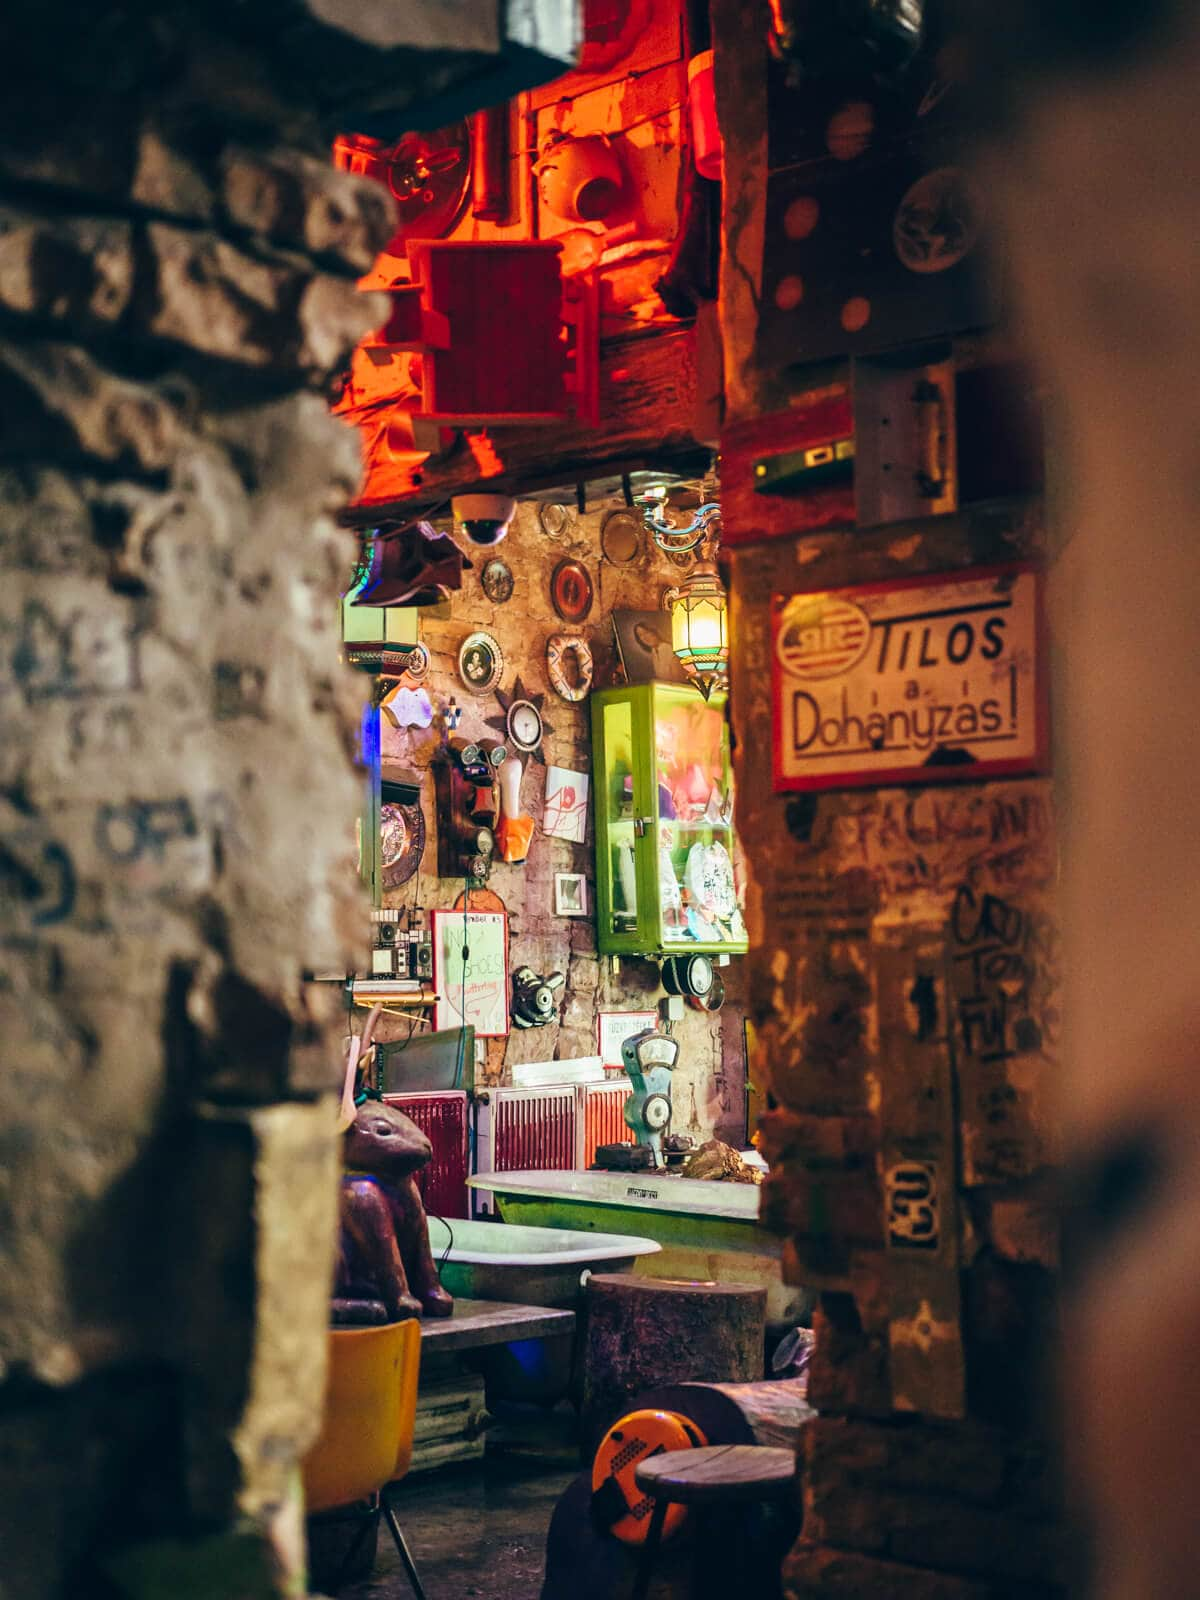 Budapest Instagram photo guide - Szimpla Kert the famous ruin bar